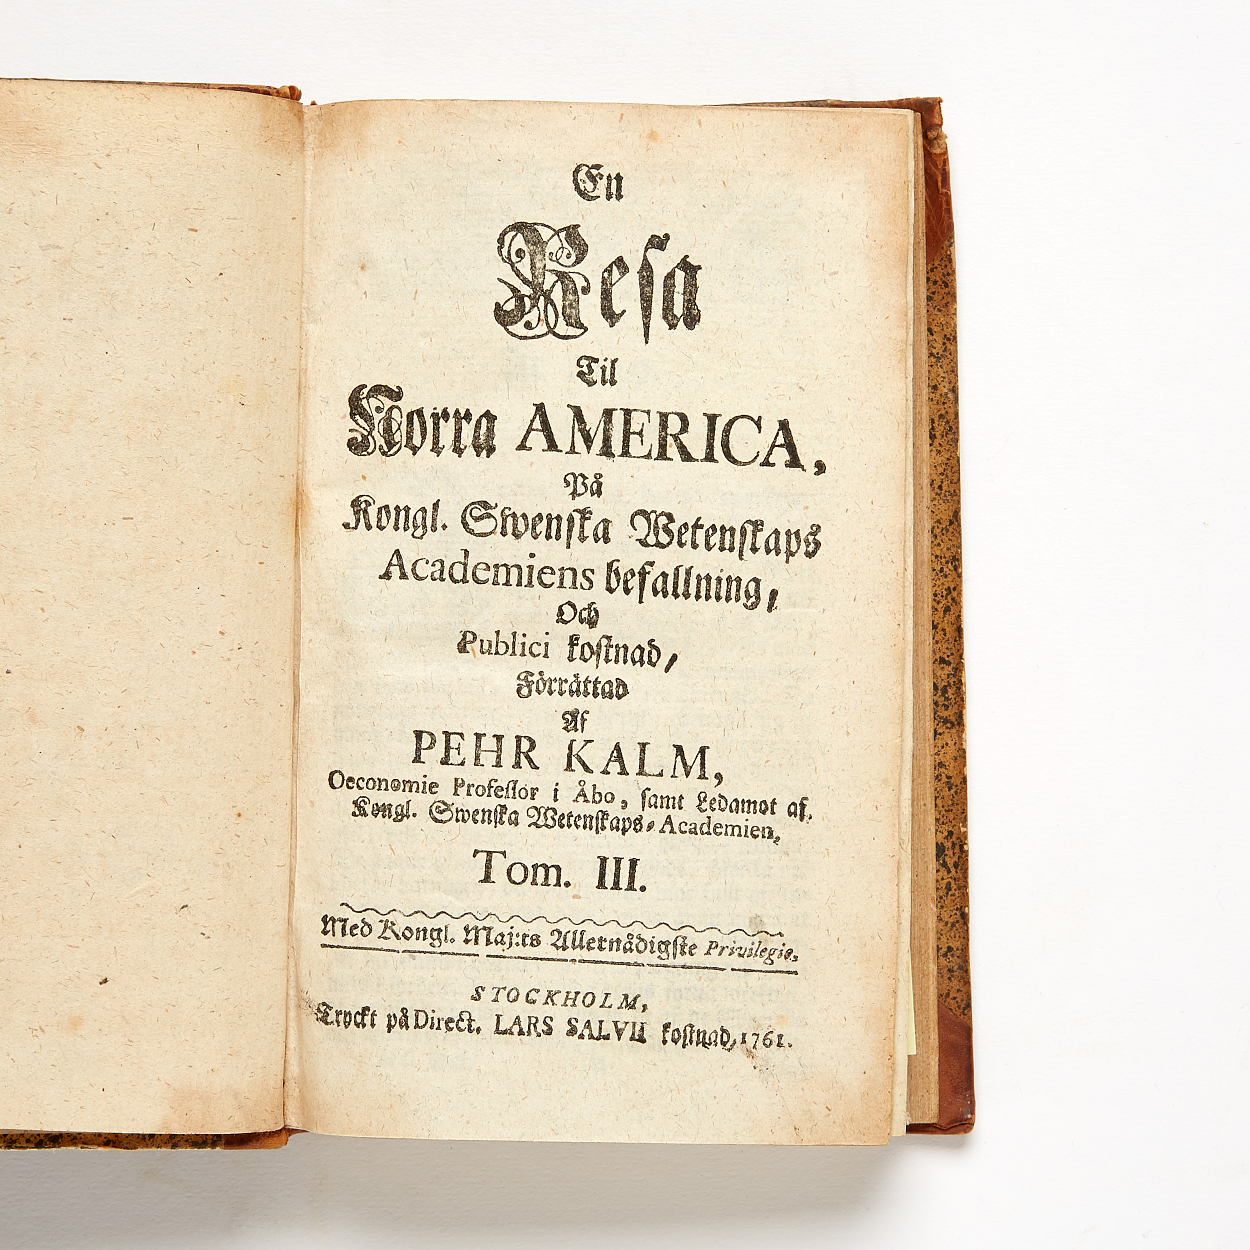 Kalm's travels in North America 2 volumes